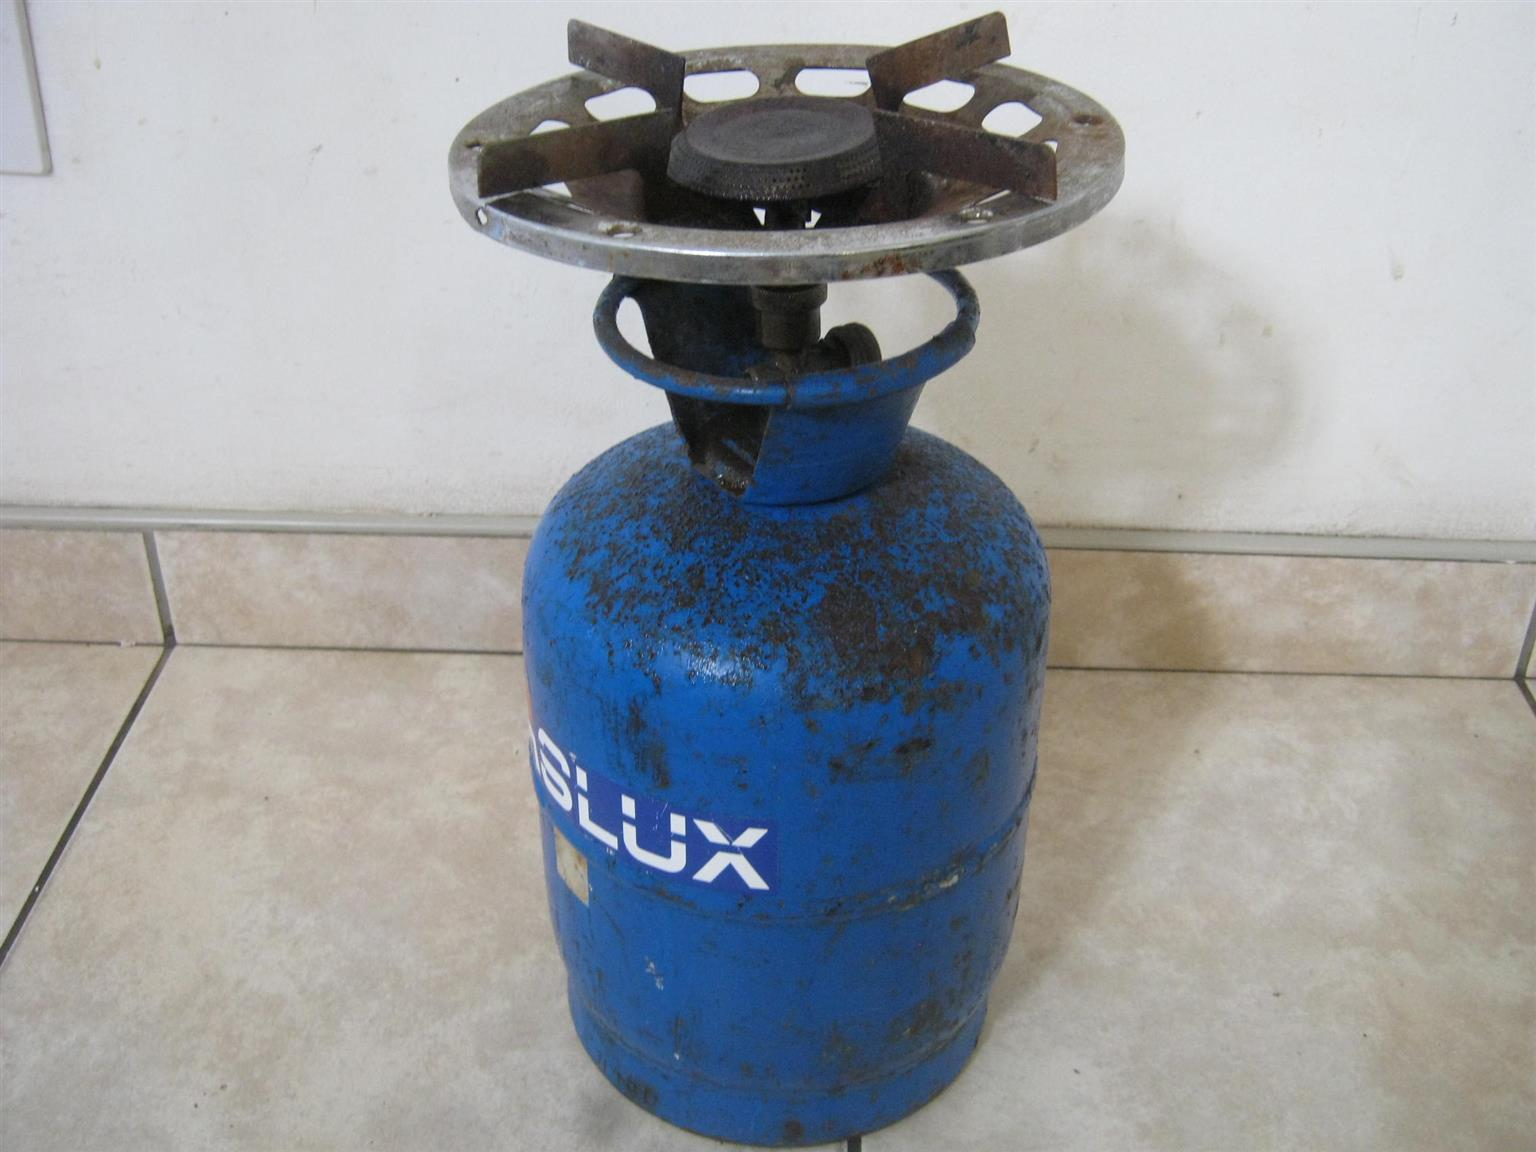 Gaslux 7kg Gas Cylinder and Cooker Top